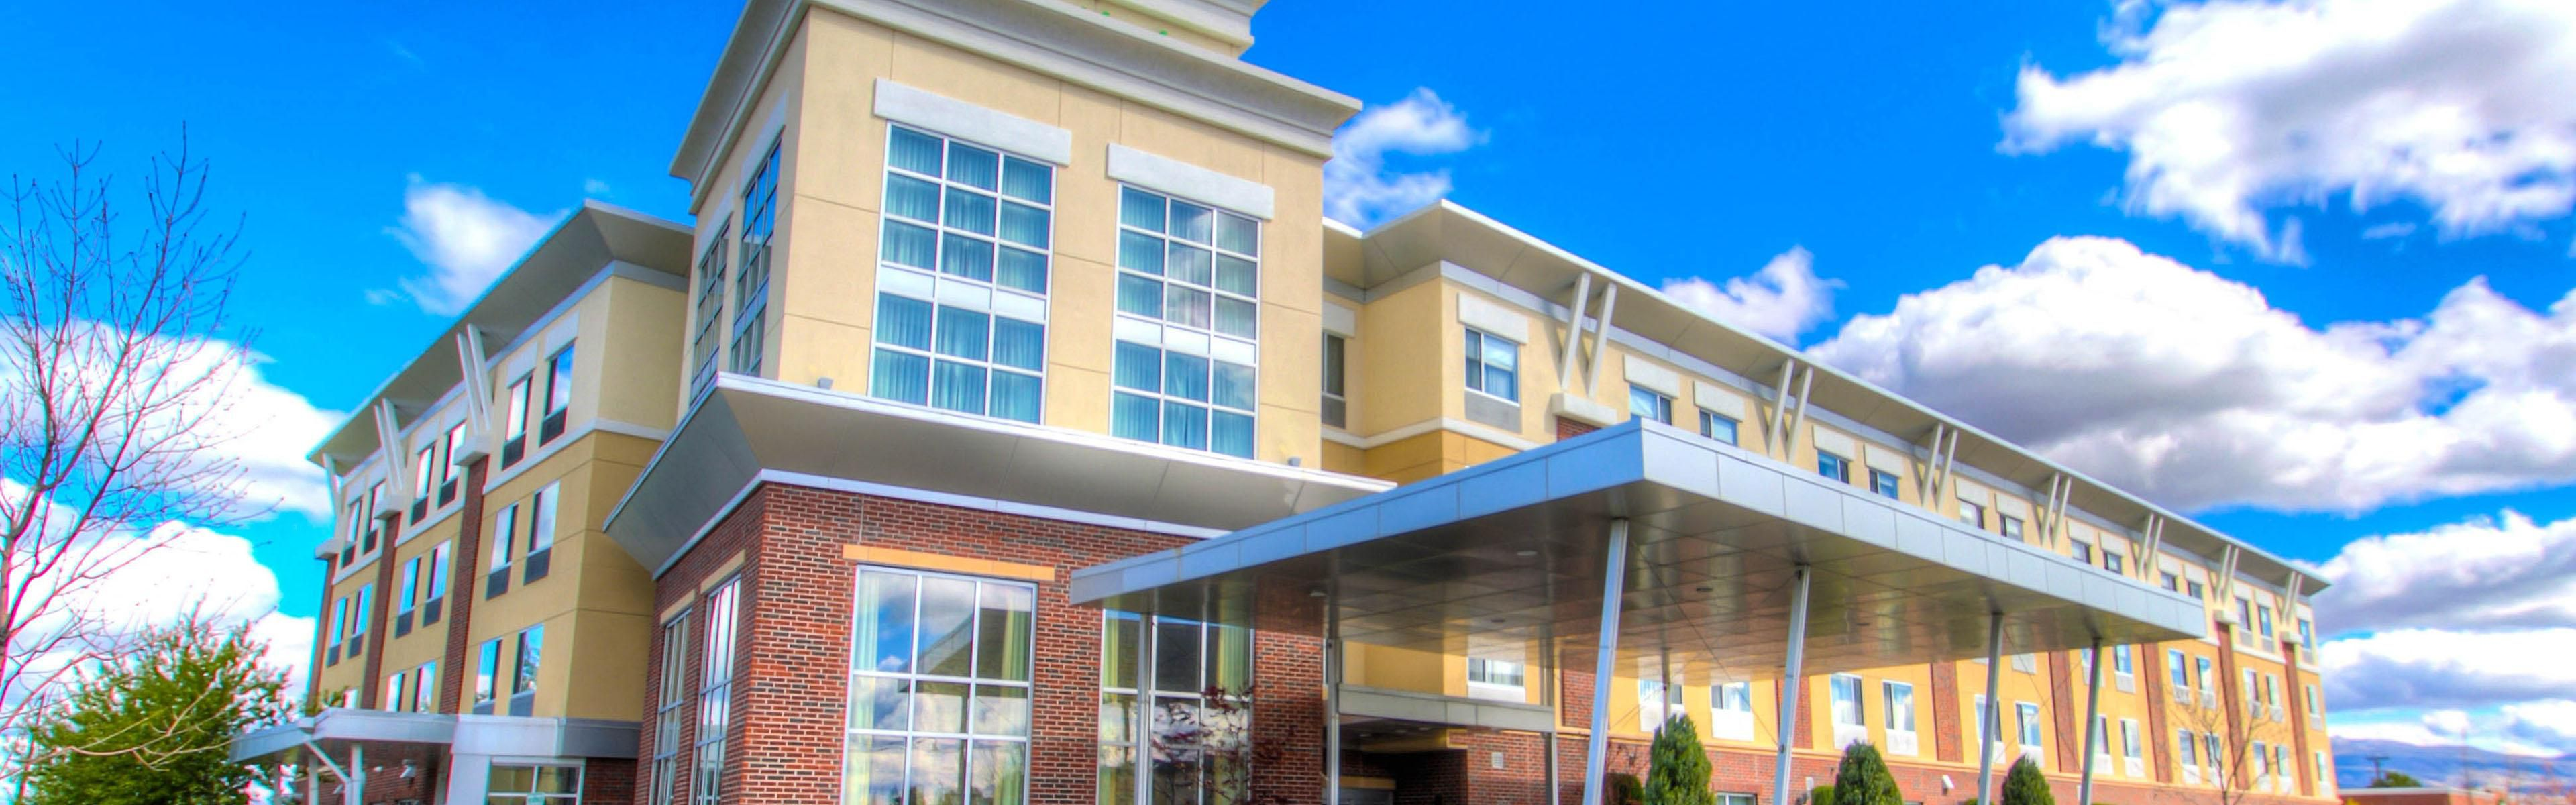 Holiday Inn Boise Airport image 0